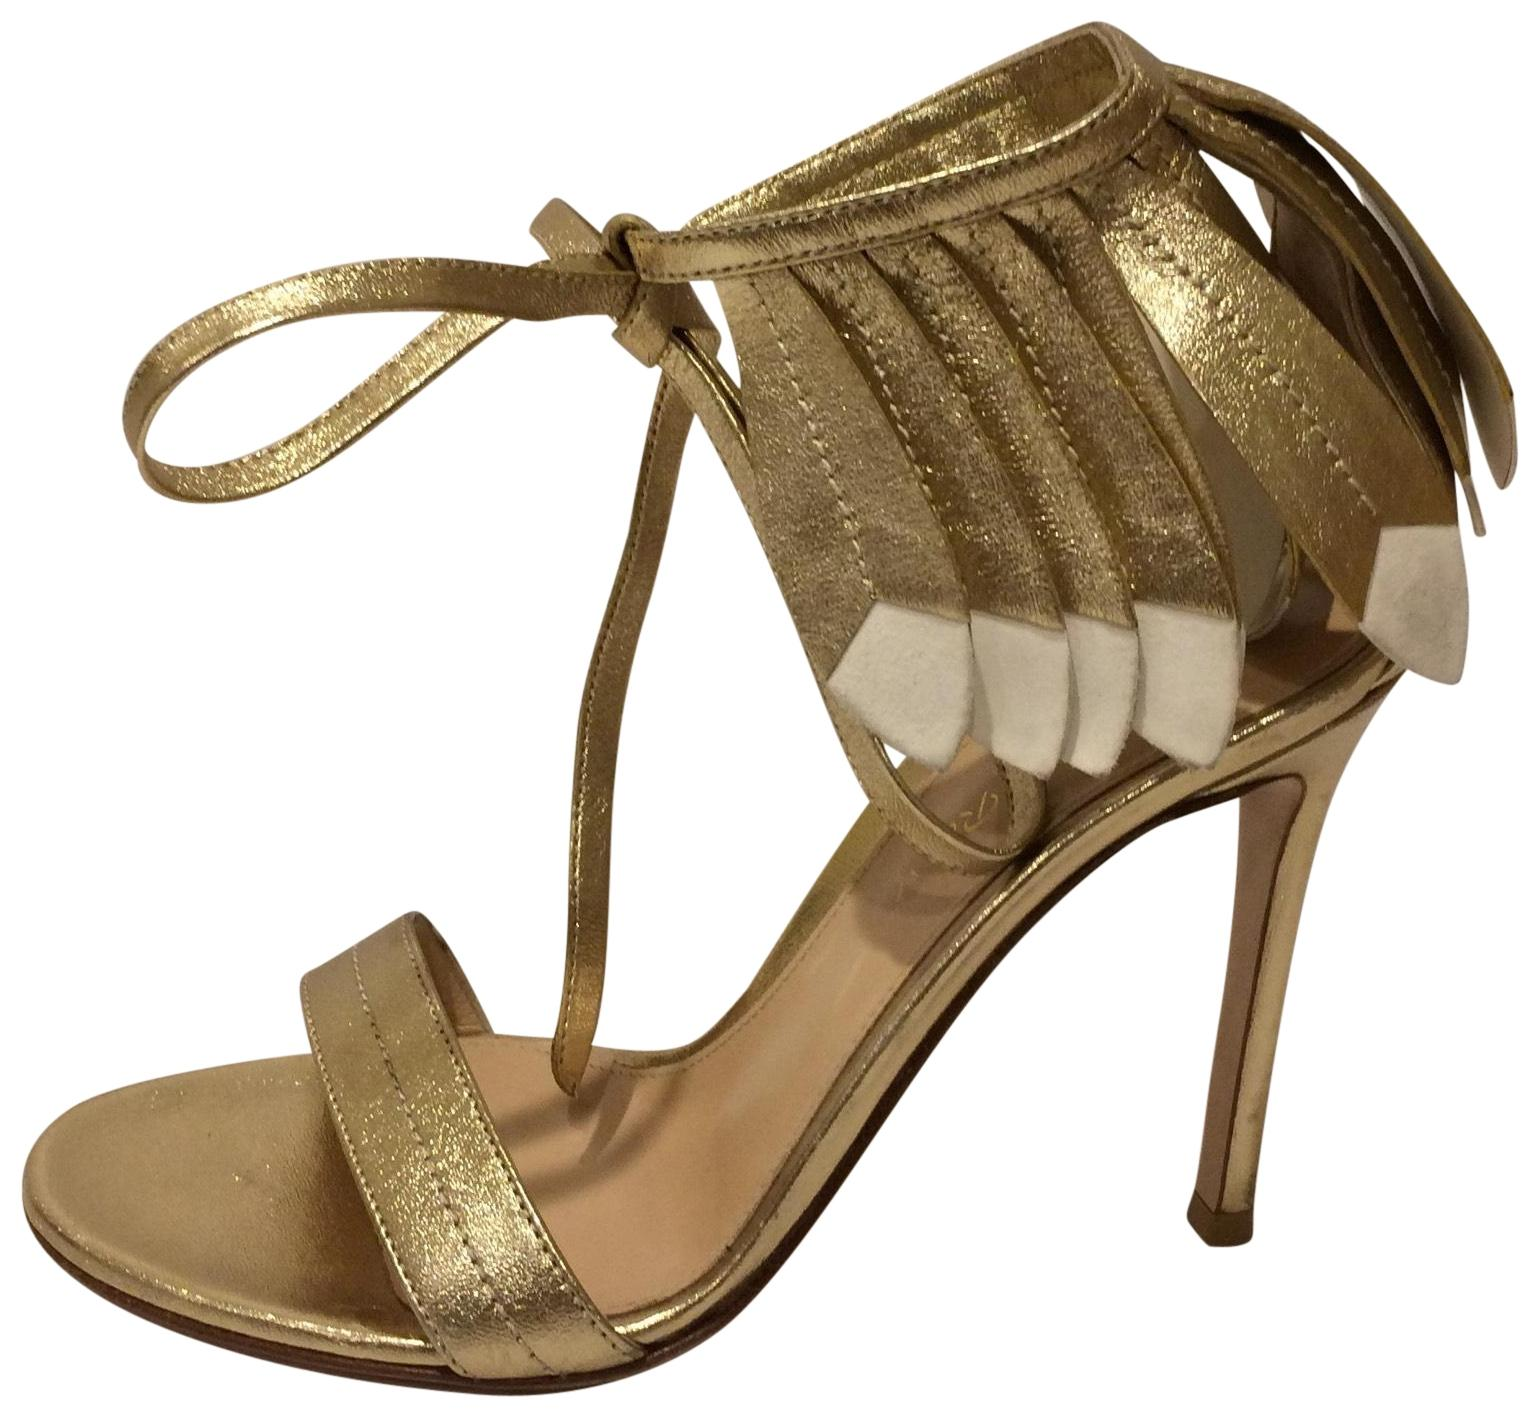 1e7d82b02adb9 Gianvito Rossi Gold New1 Ankle Strap Leather Sandals Sandals Sandals ...